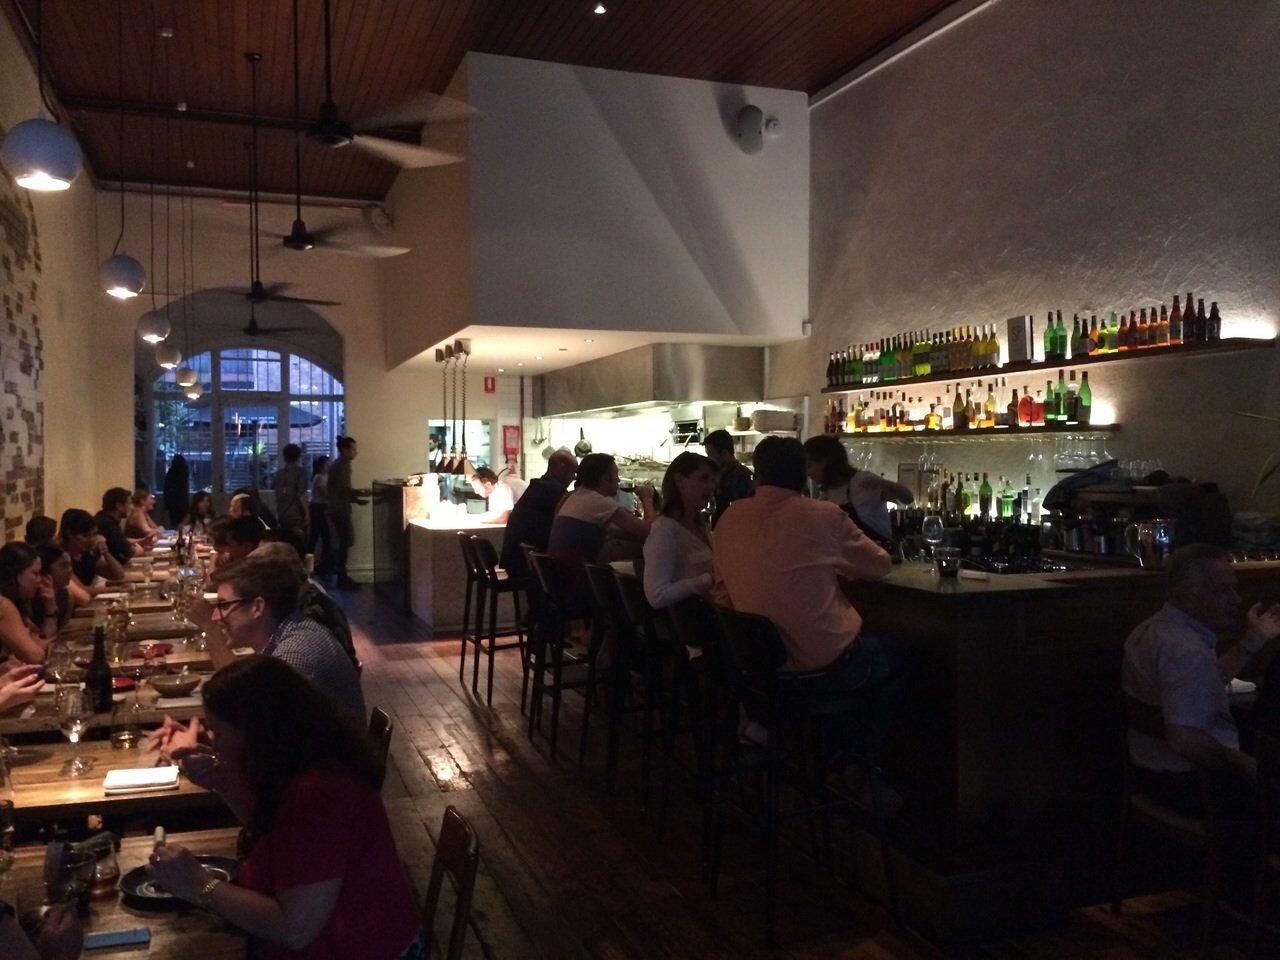 Masterchef Restaurant in Melbourne